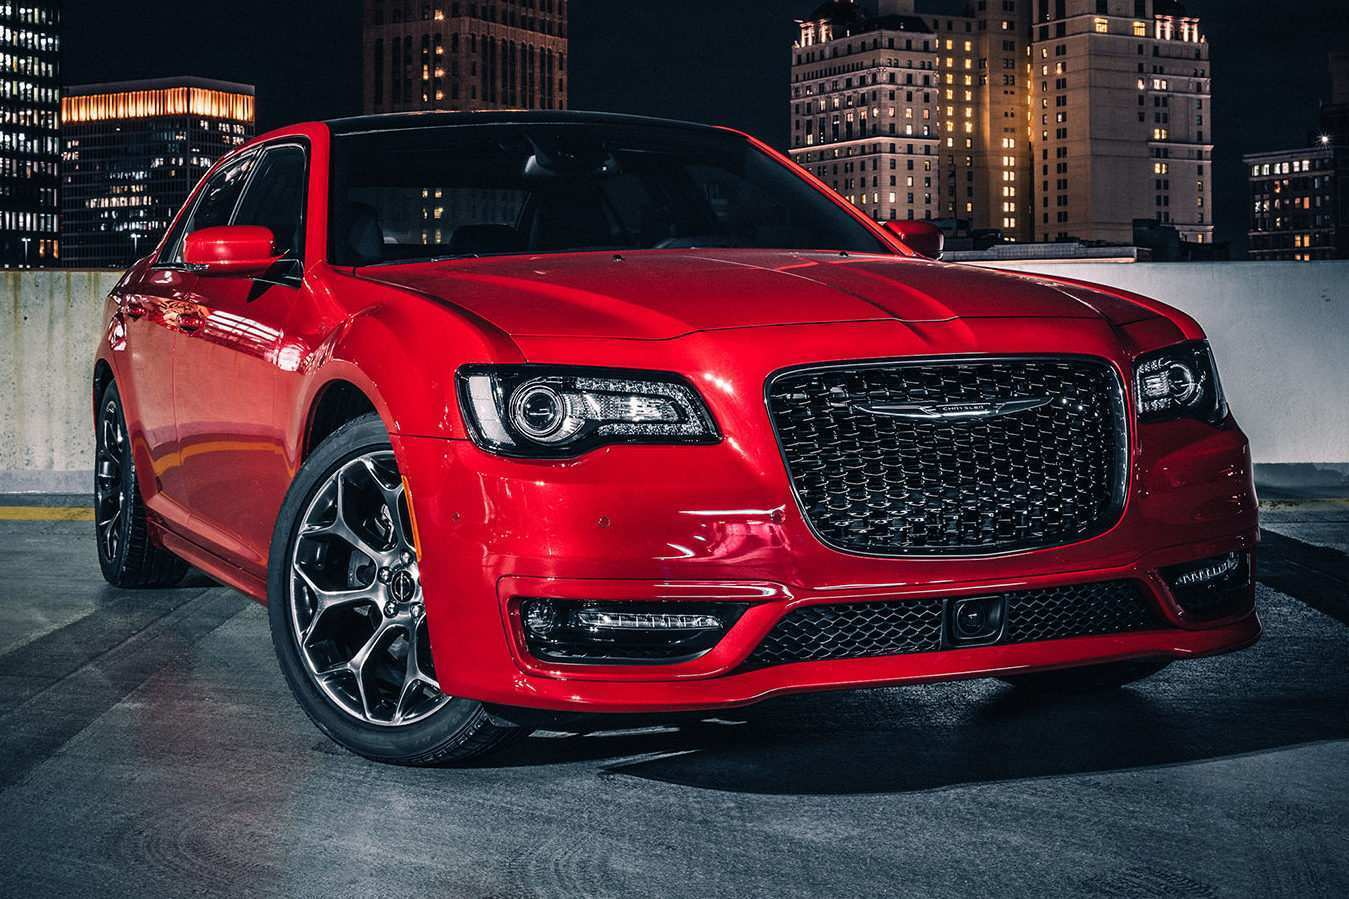 86 Concept of 2019 Chrysler 300C New Concept for 2019 Chrysler 300C